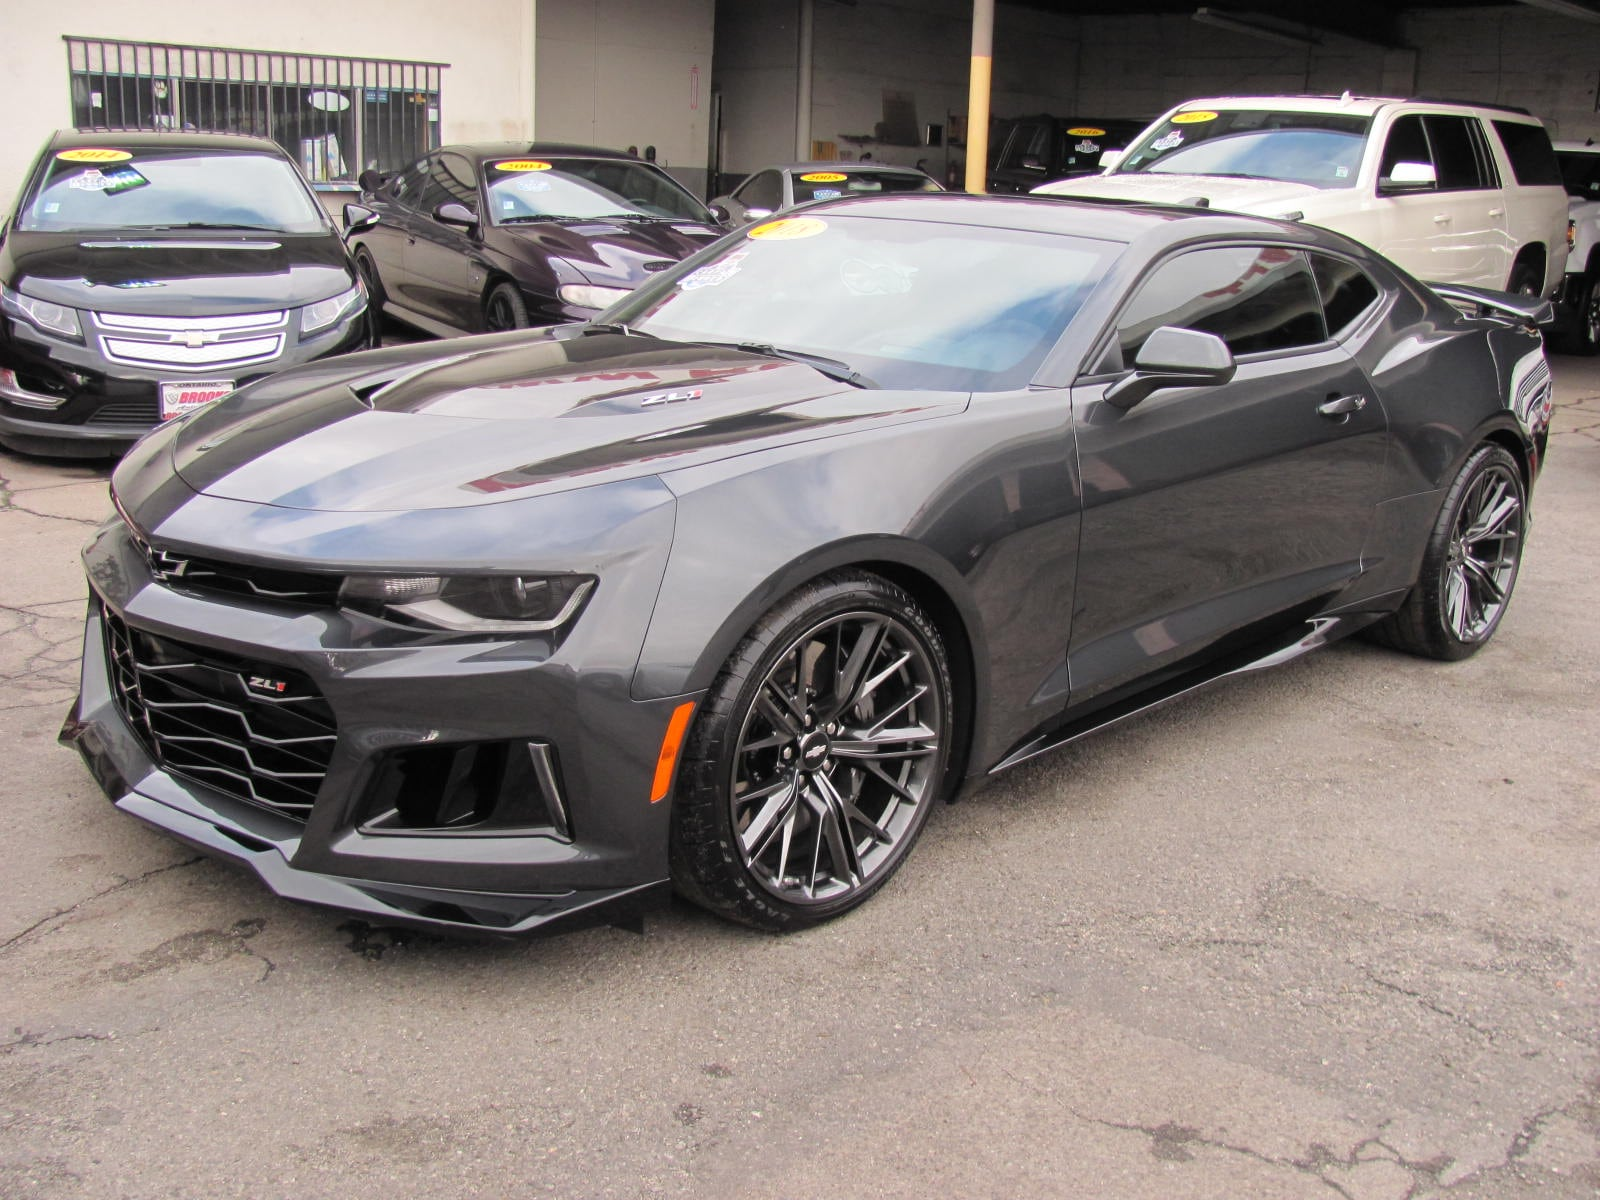 2018 Chevrolet Camaro ZL1 Supercharged (6 Speed Manual) Coupe